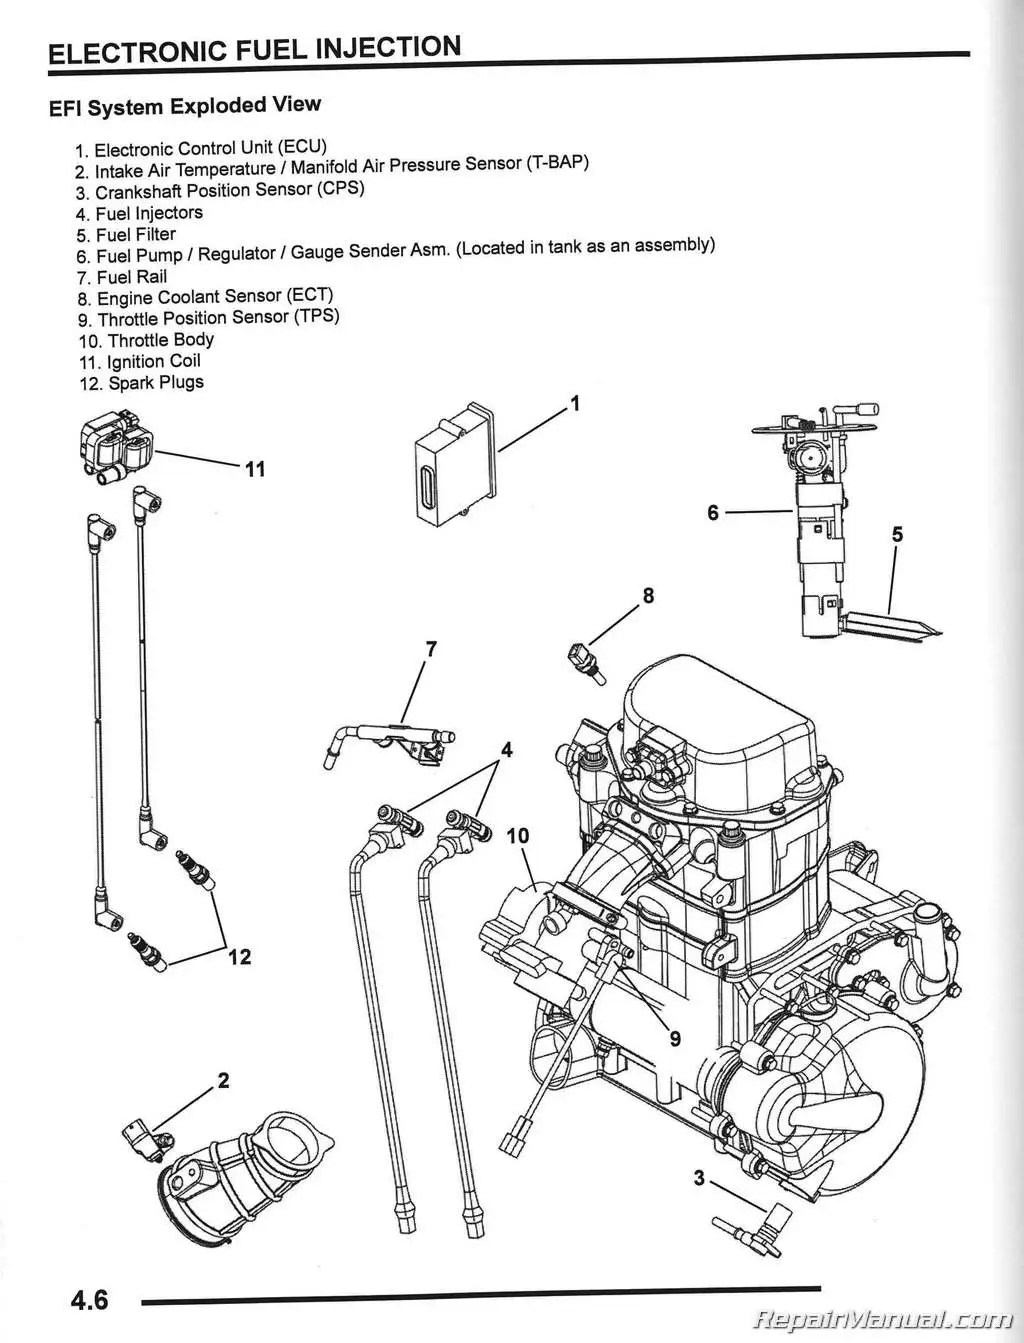 hight resolution of 2008 polaris ranger rzr 800 side by side service manual king quad 700 wiring diagram rzr 800 4wd wiring diagram